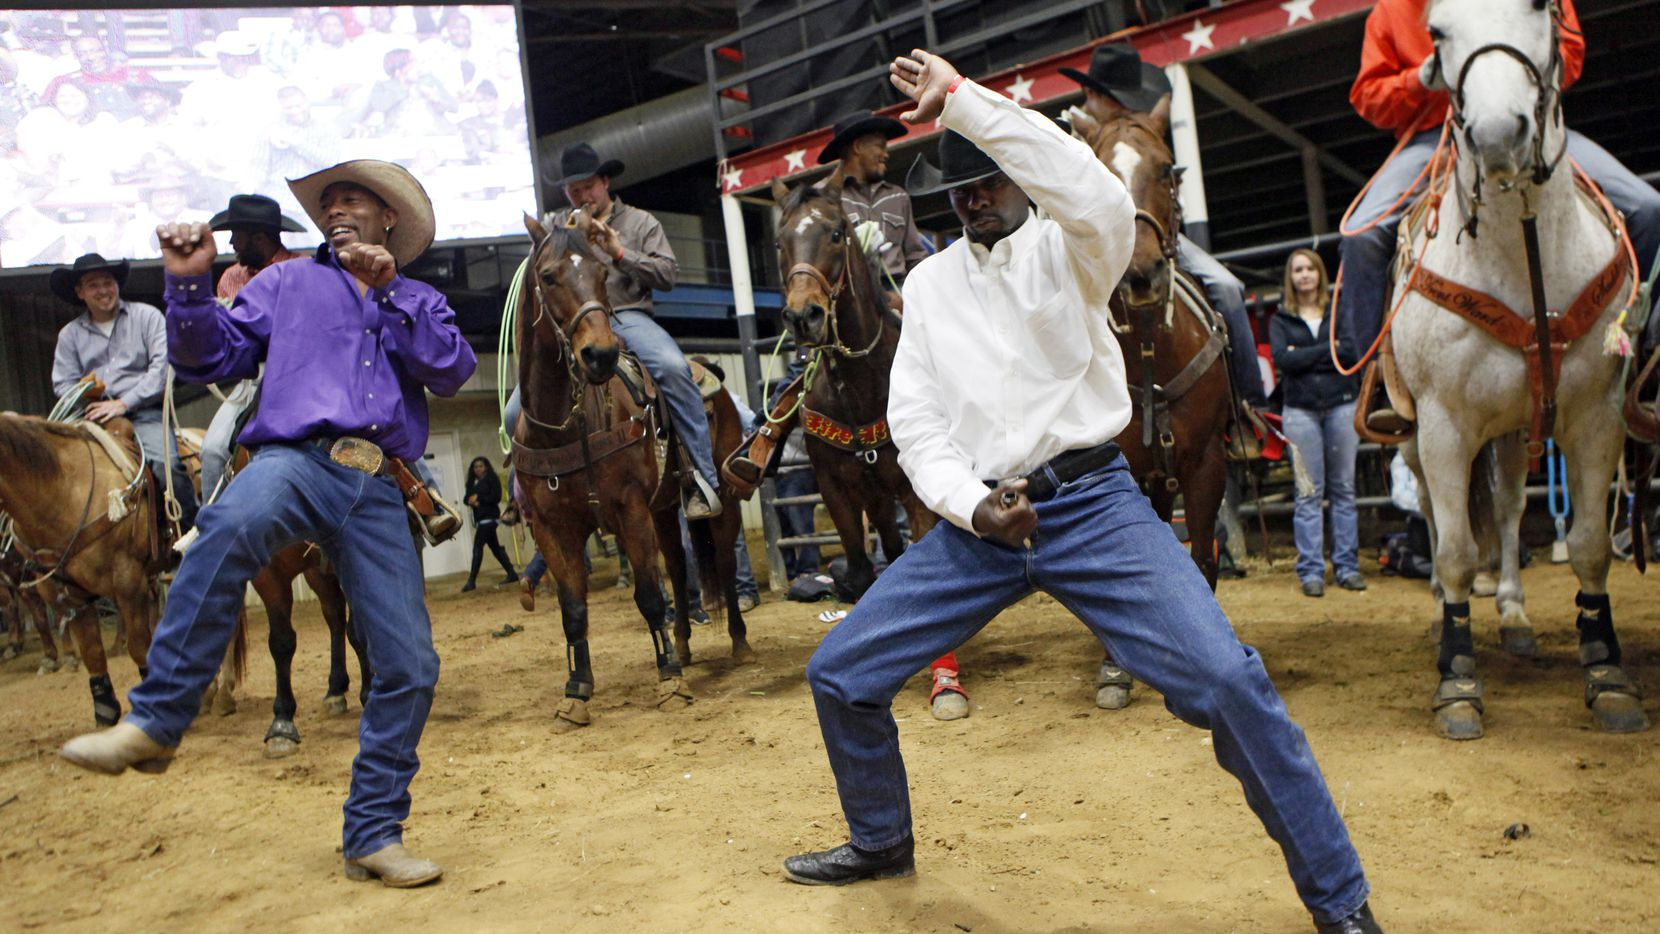 Cowboys Dennis Ezell, also known as Bronco, left, and Tyrone Williams show off their dancing skills as hip hop music is played through speakers at the Hip Hop Cowboys Spring Rodeo in Mesquite.